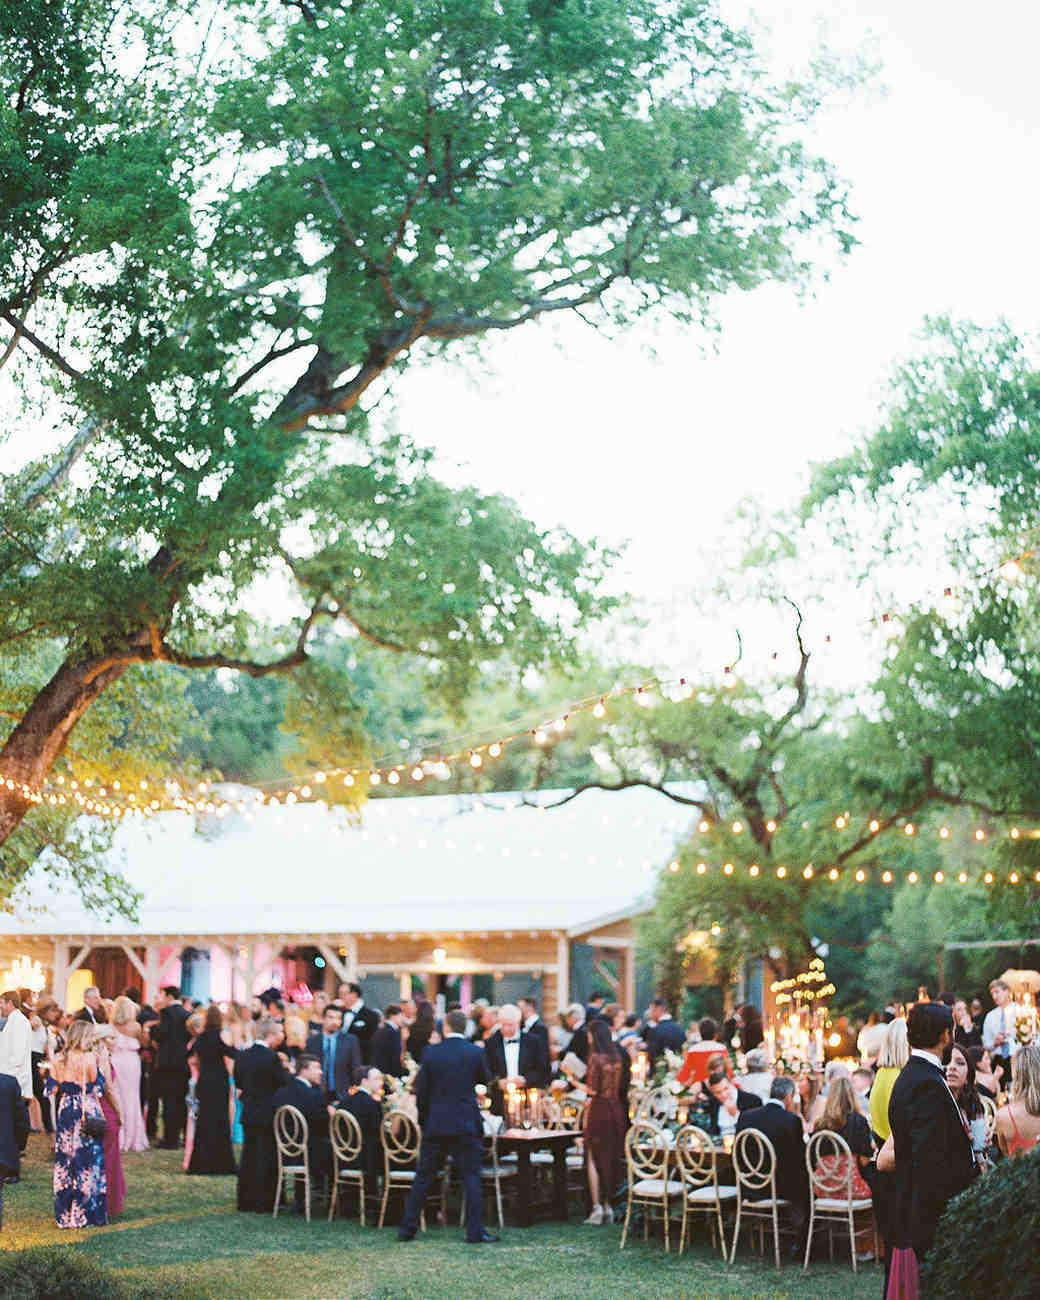 outdoor wedding reception with trees adorned with string lights